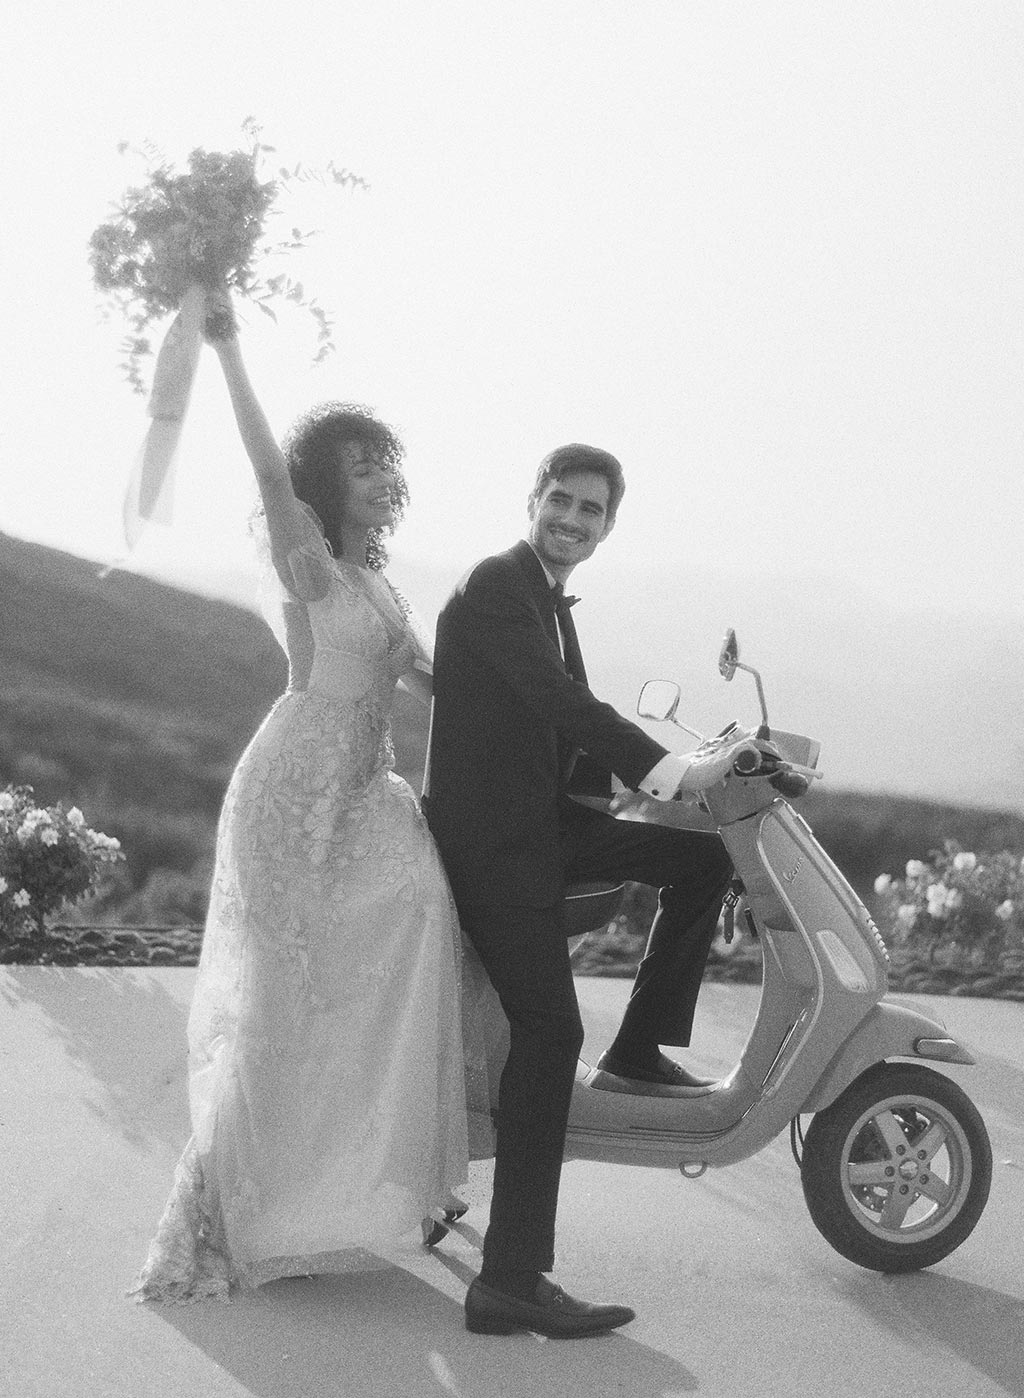 Bride and Groom on Scooter Wedding Inspiration